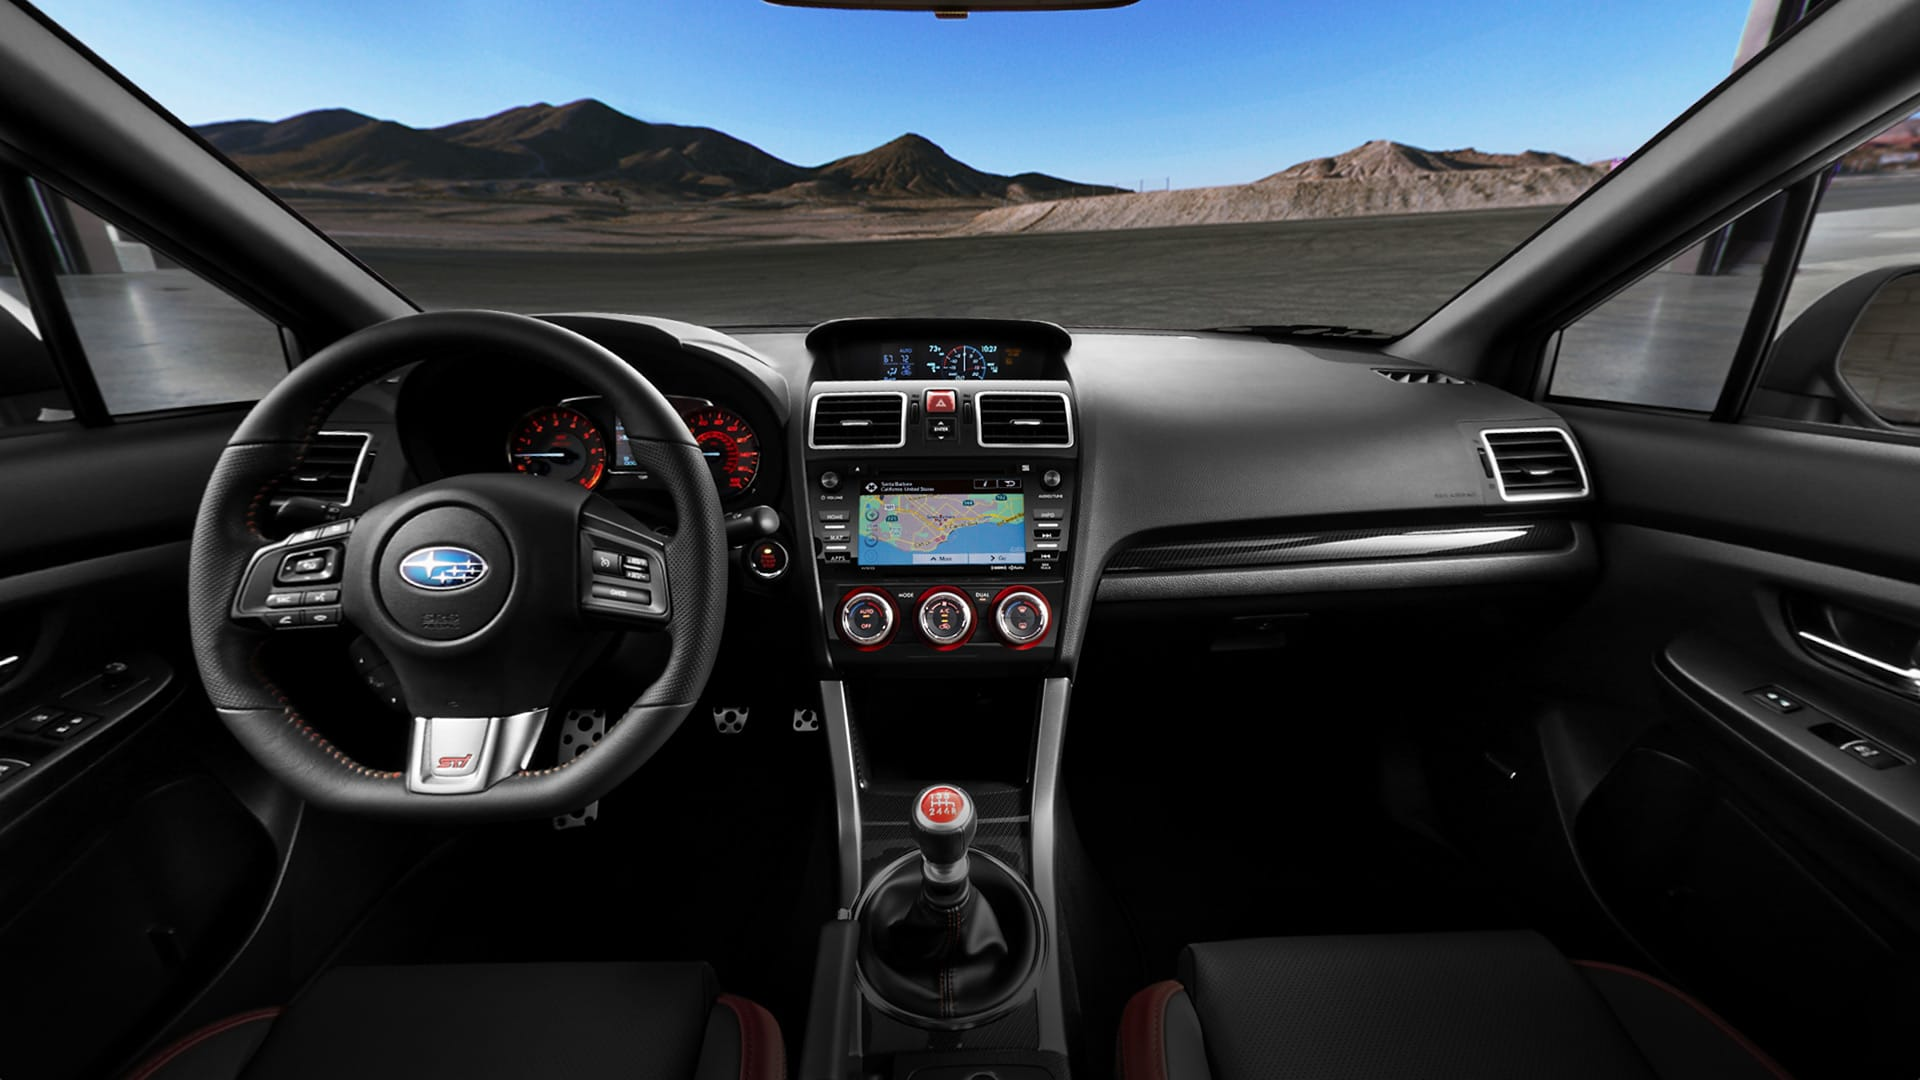 2017 Subaru WRX STI Interior Tour | 360 Degree Interior view